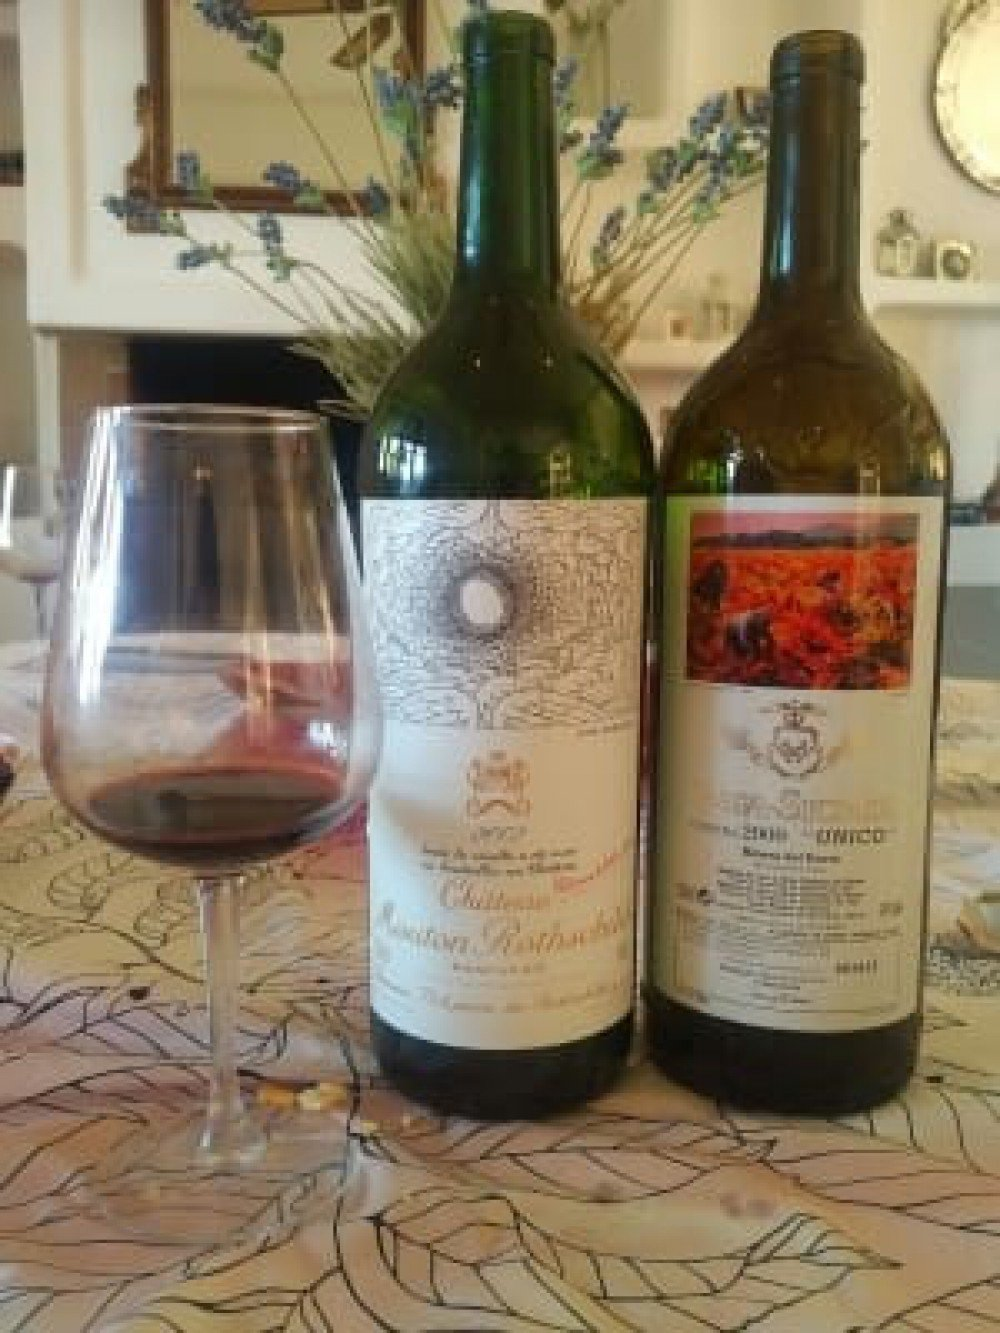 Vega Sicilia Unico 2000 vs. Mouton Rothschild 2002